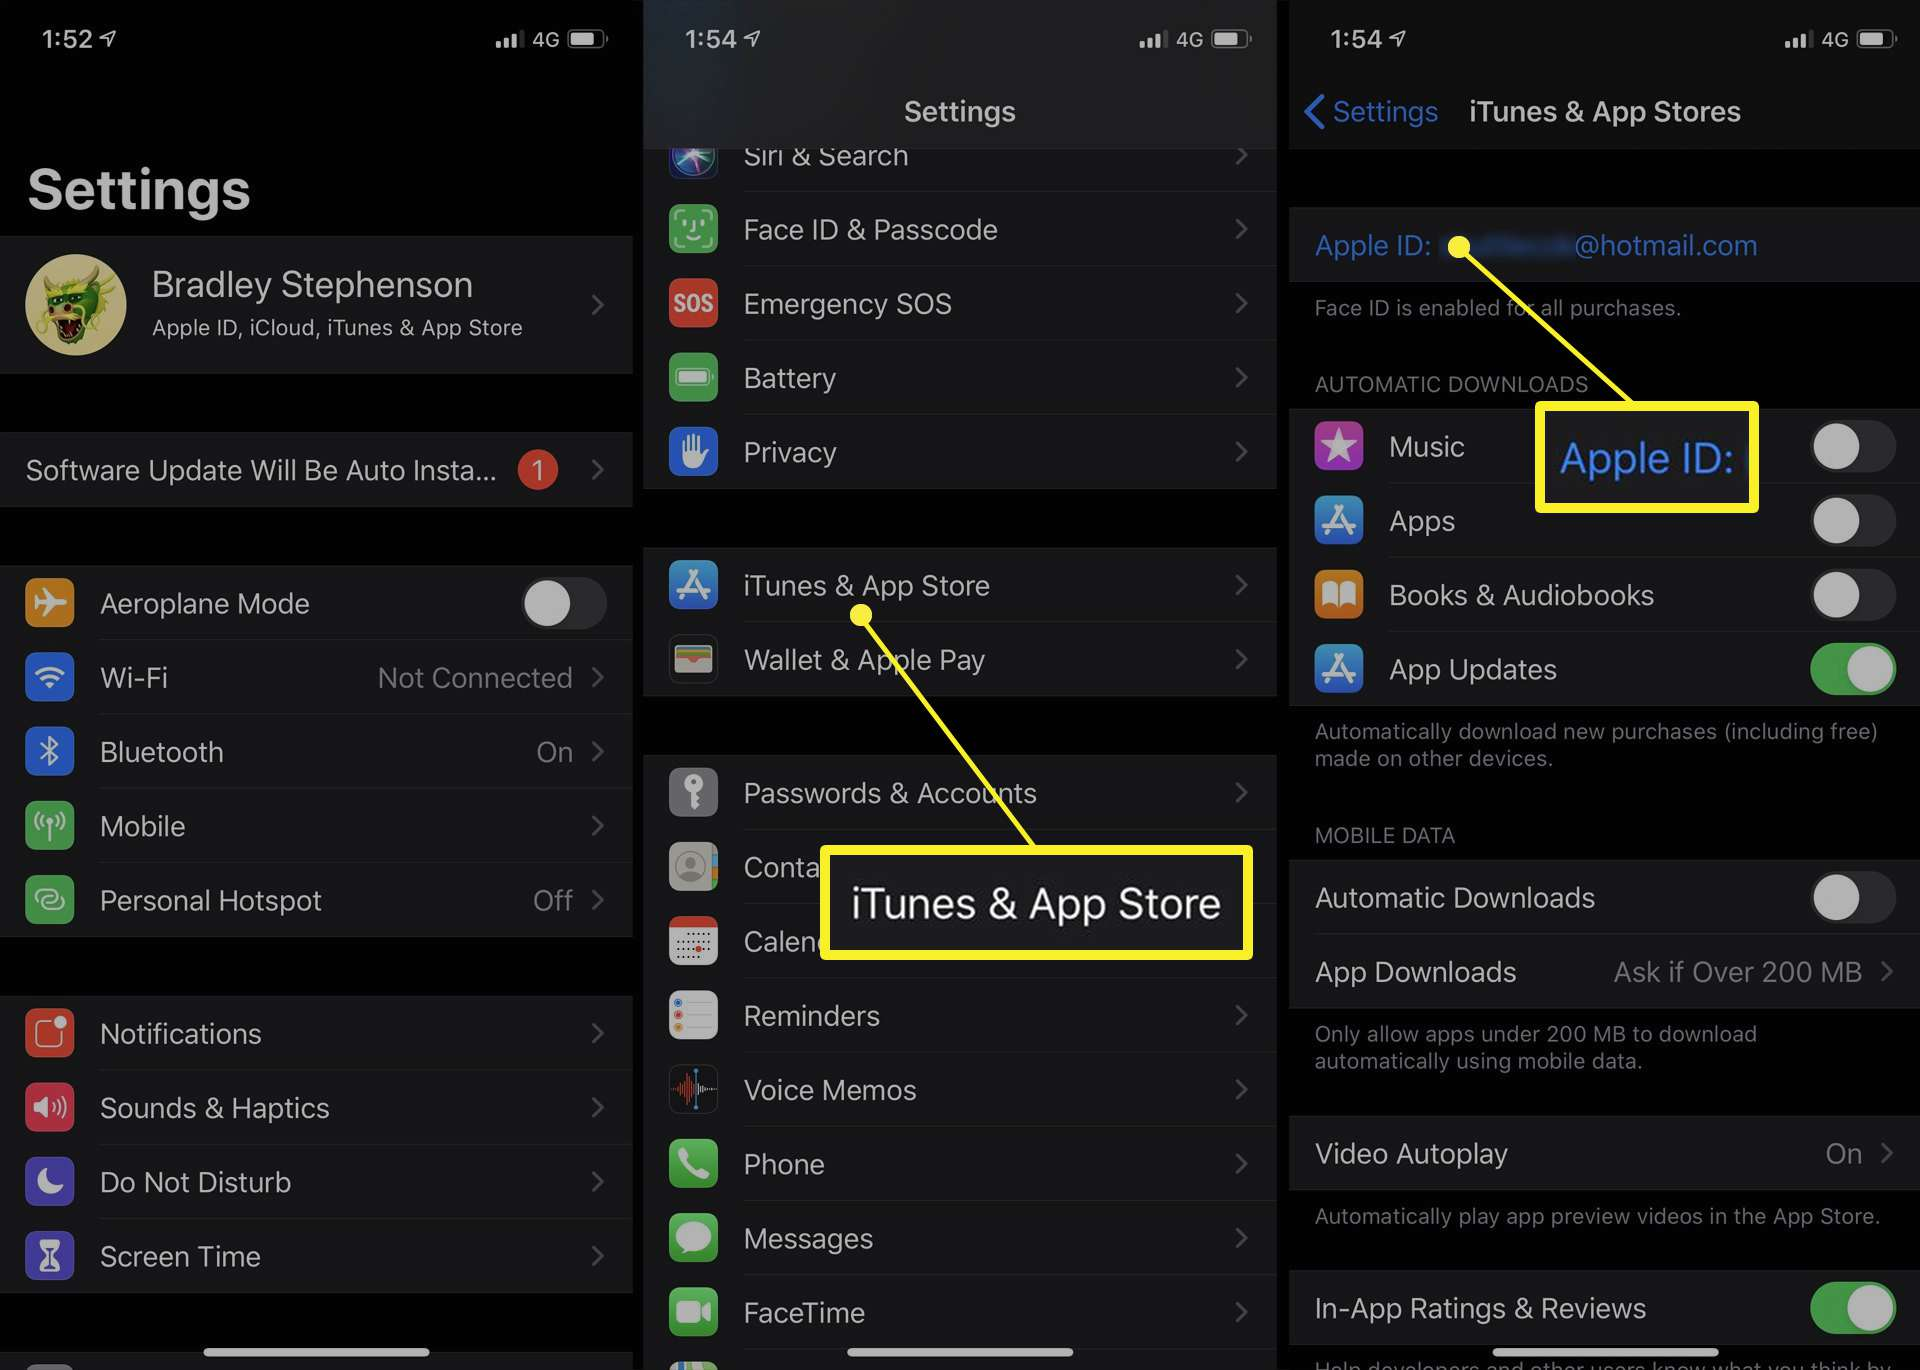 iPhone access to iTunes & App Store settings